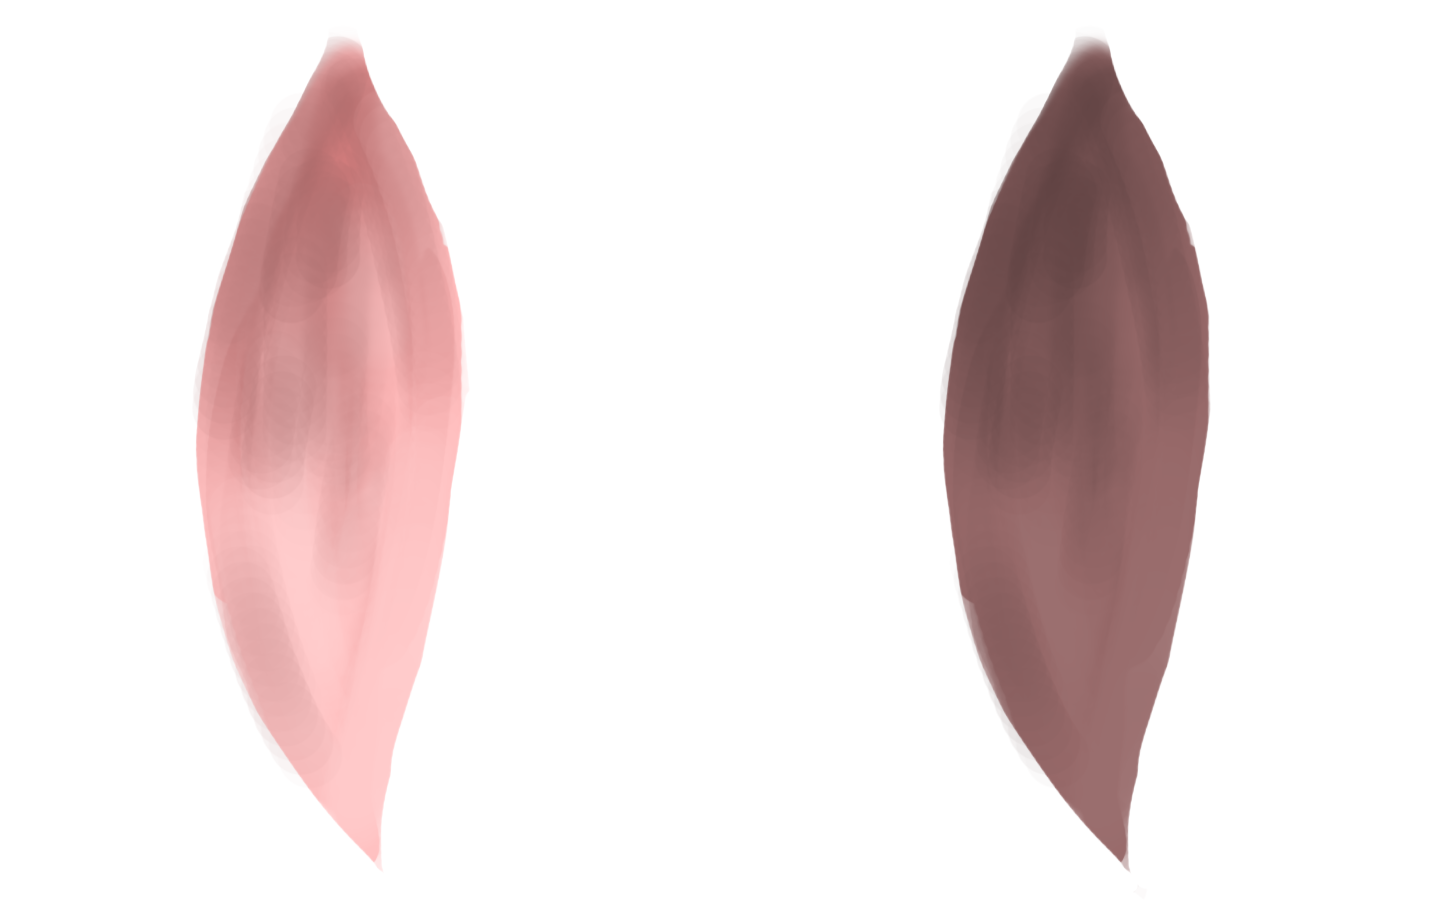 Texture for flower petal particles. Front and back.